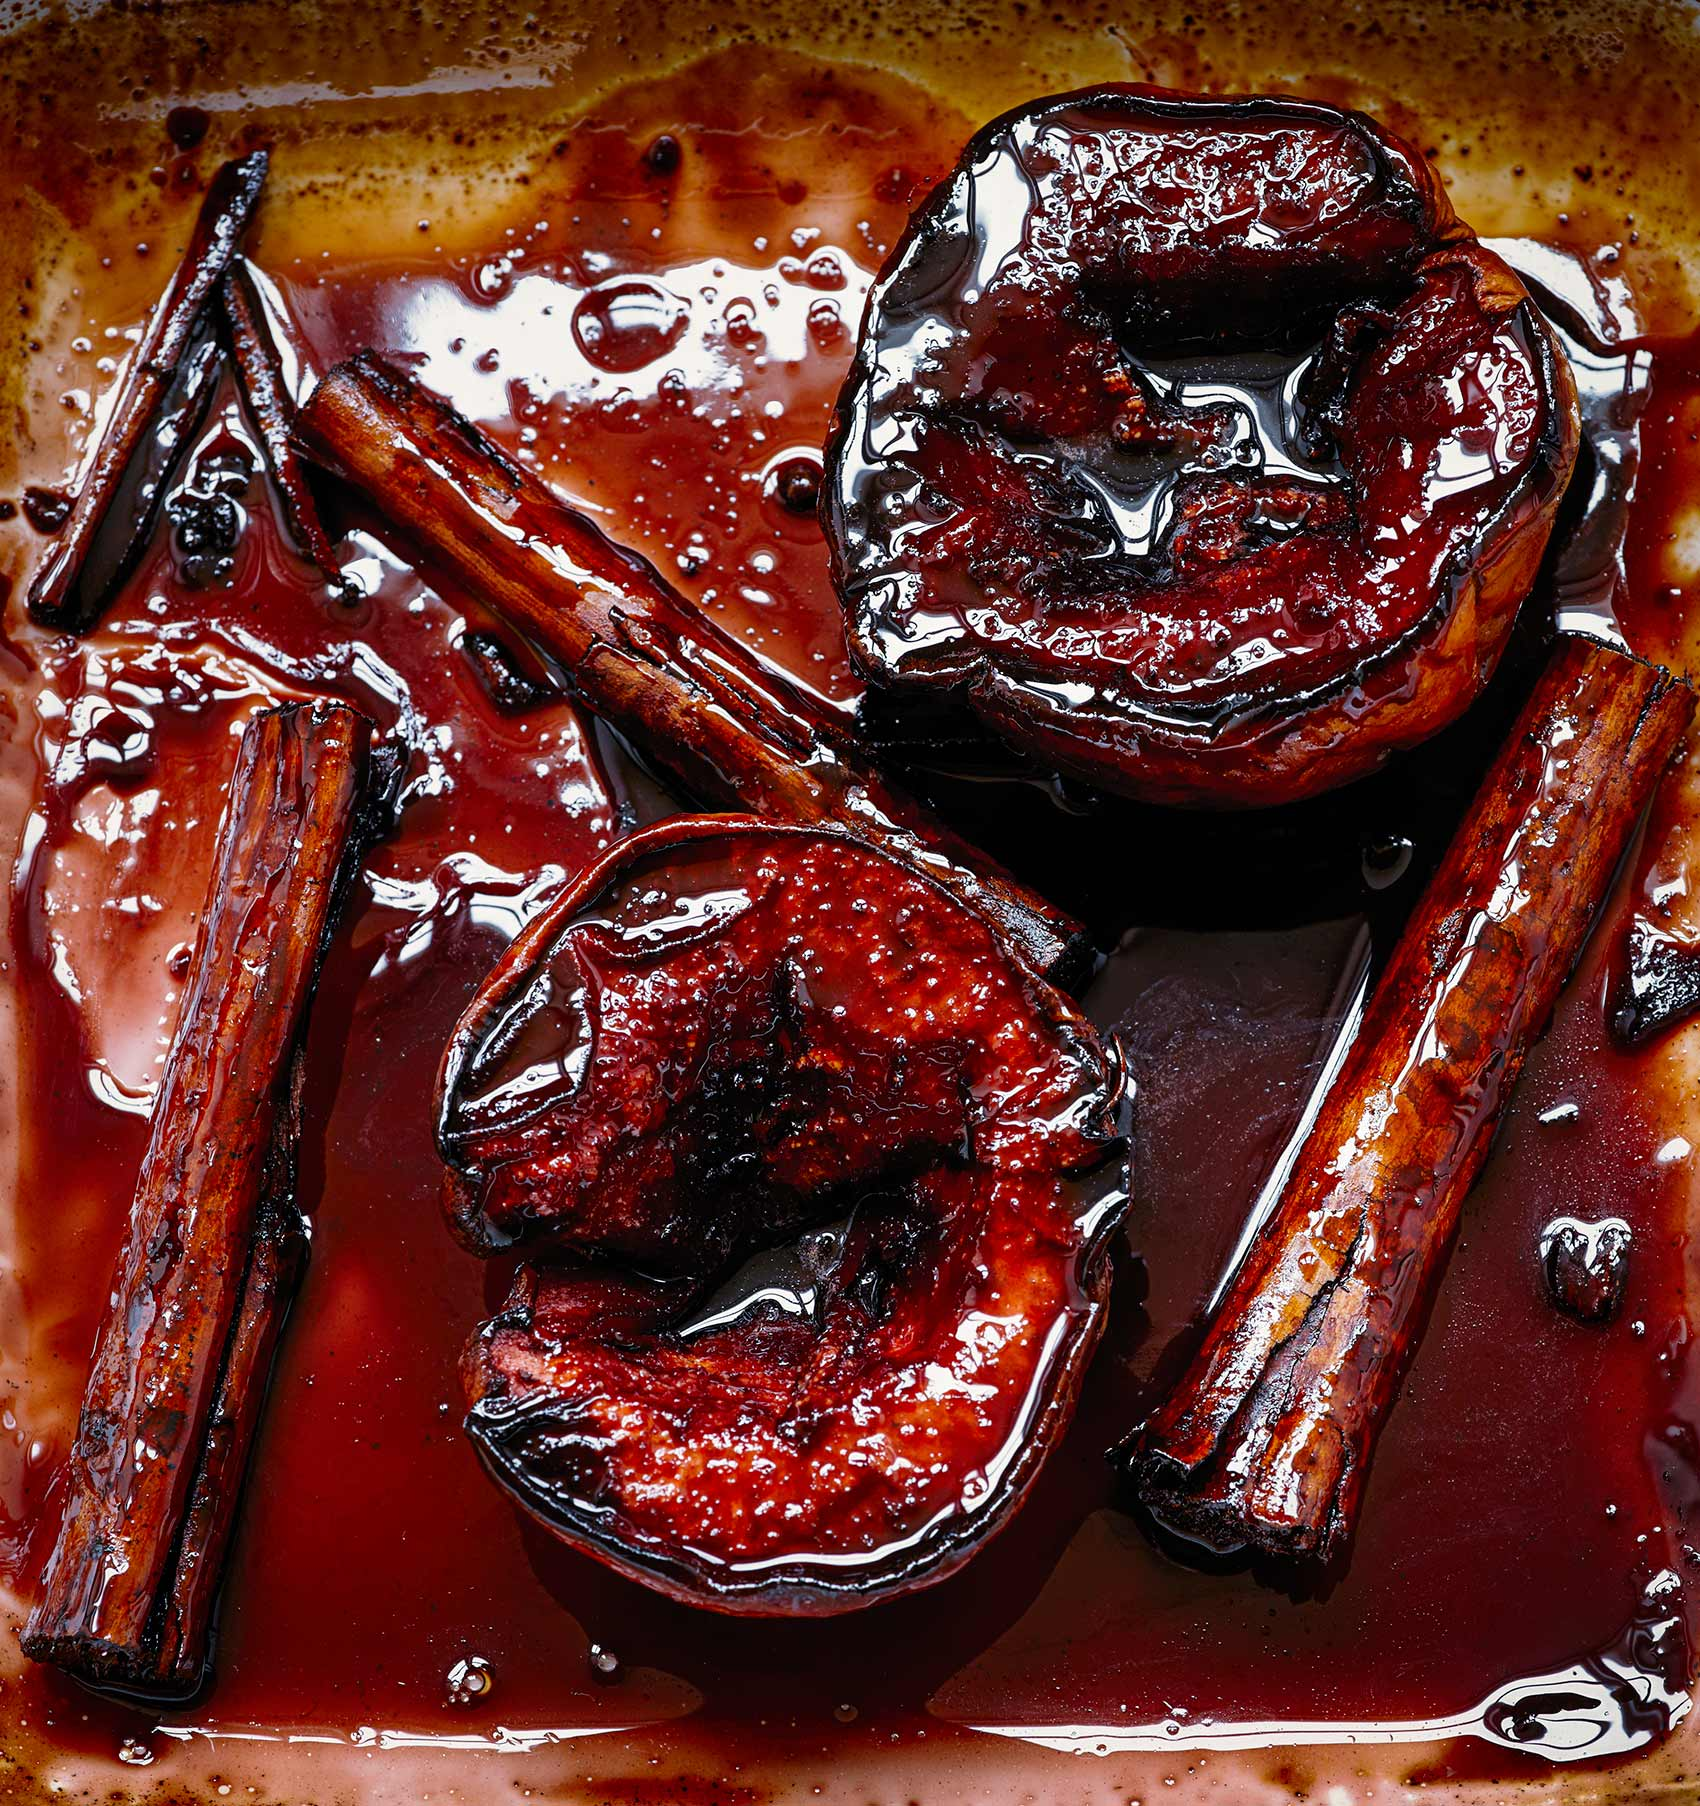 Roasted Quince | Colin Campbell - Food Photographer